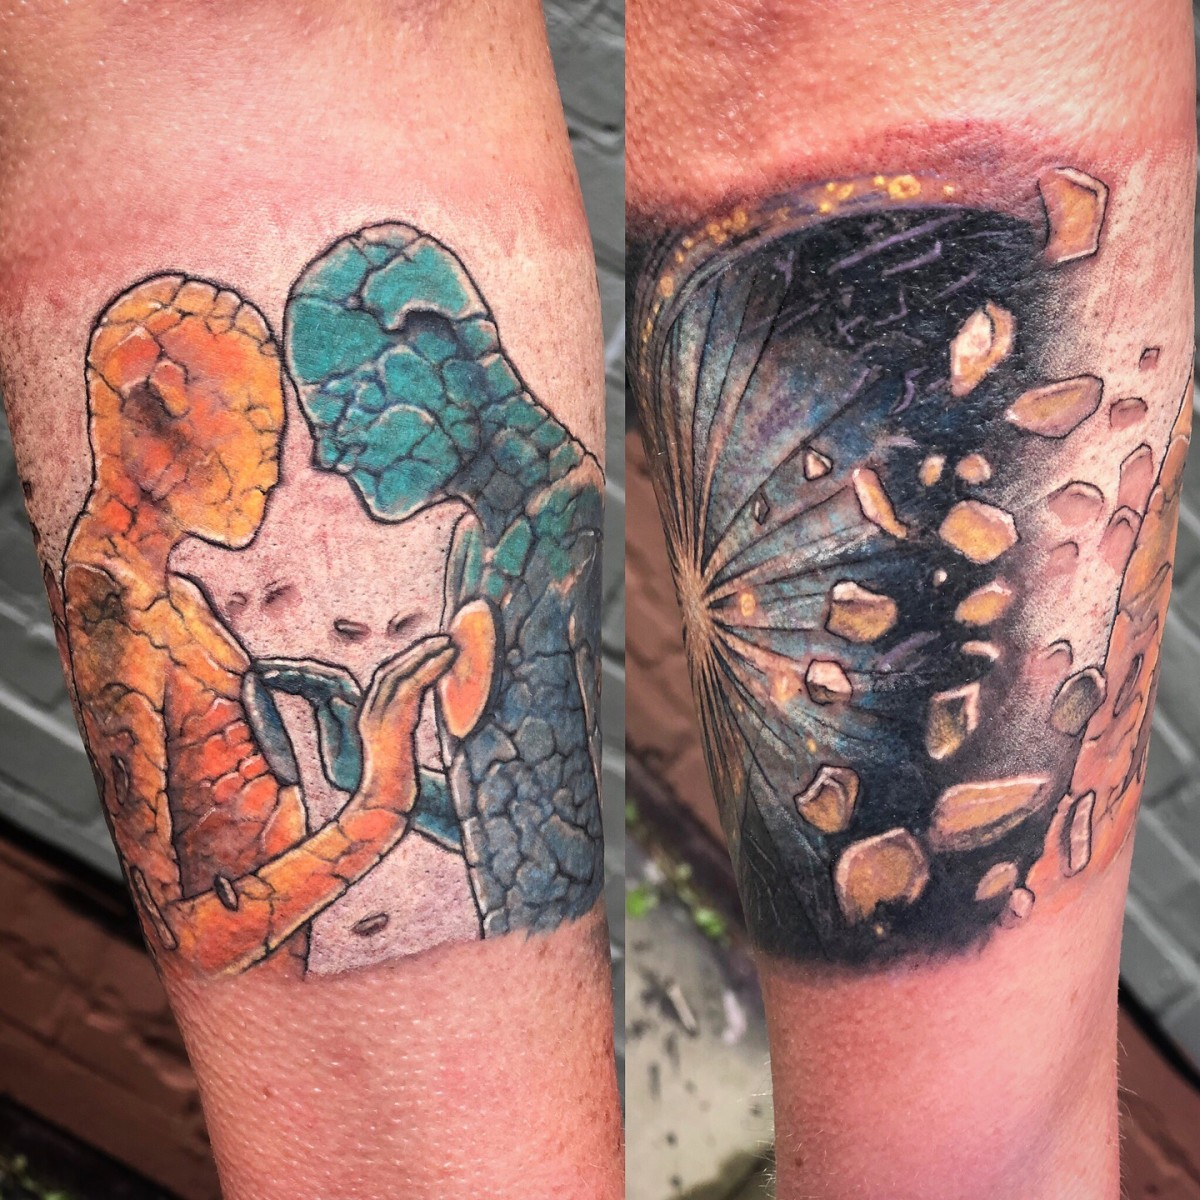 Color tattoo by Peter van der Helm - Walls and Skin